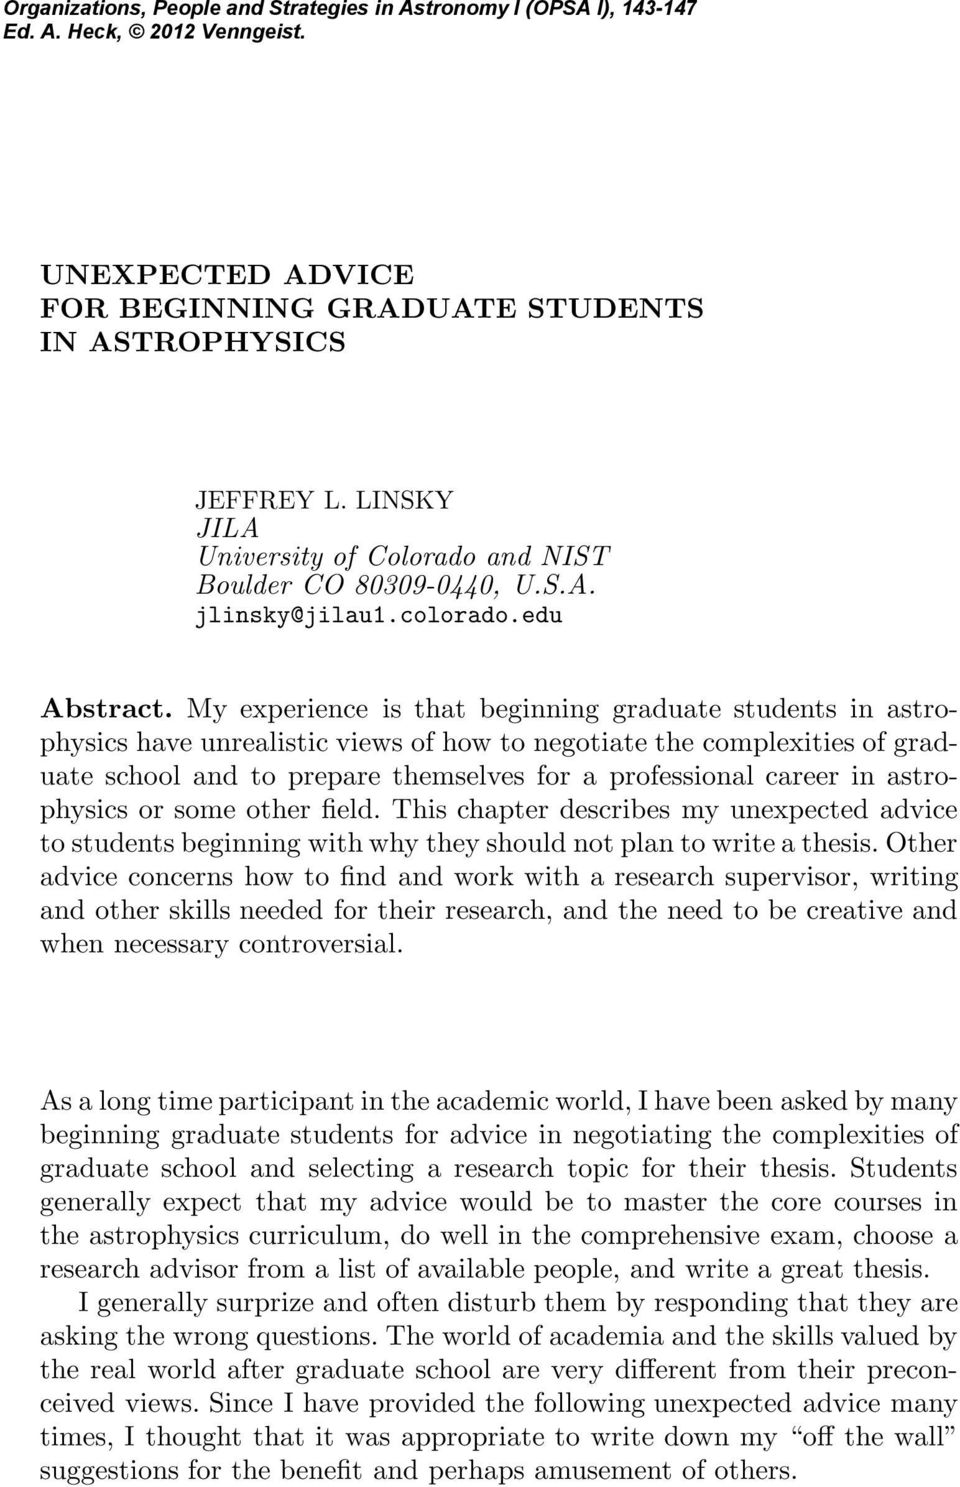 My experience is that beginning graduate students in astrophysics have unrealistic views of how to negotiate the complexities of graduate school and to prepare themselves for a professional career in